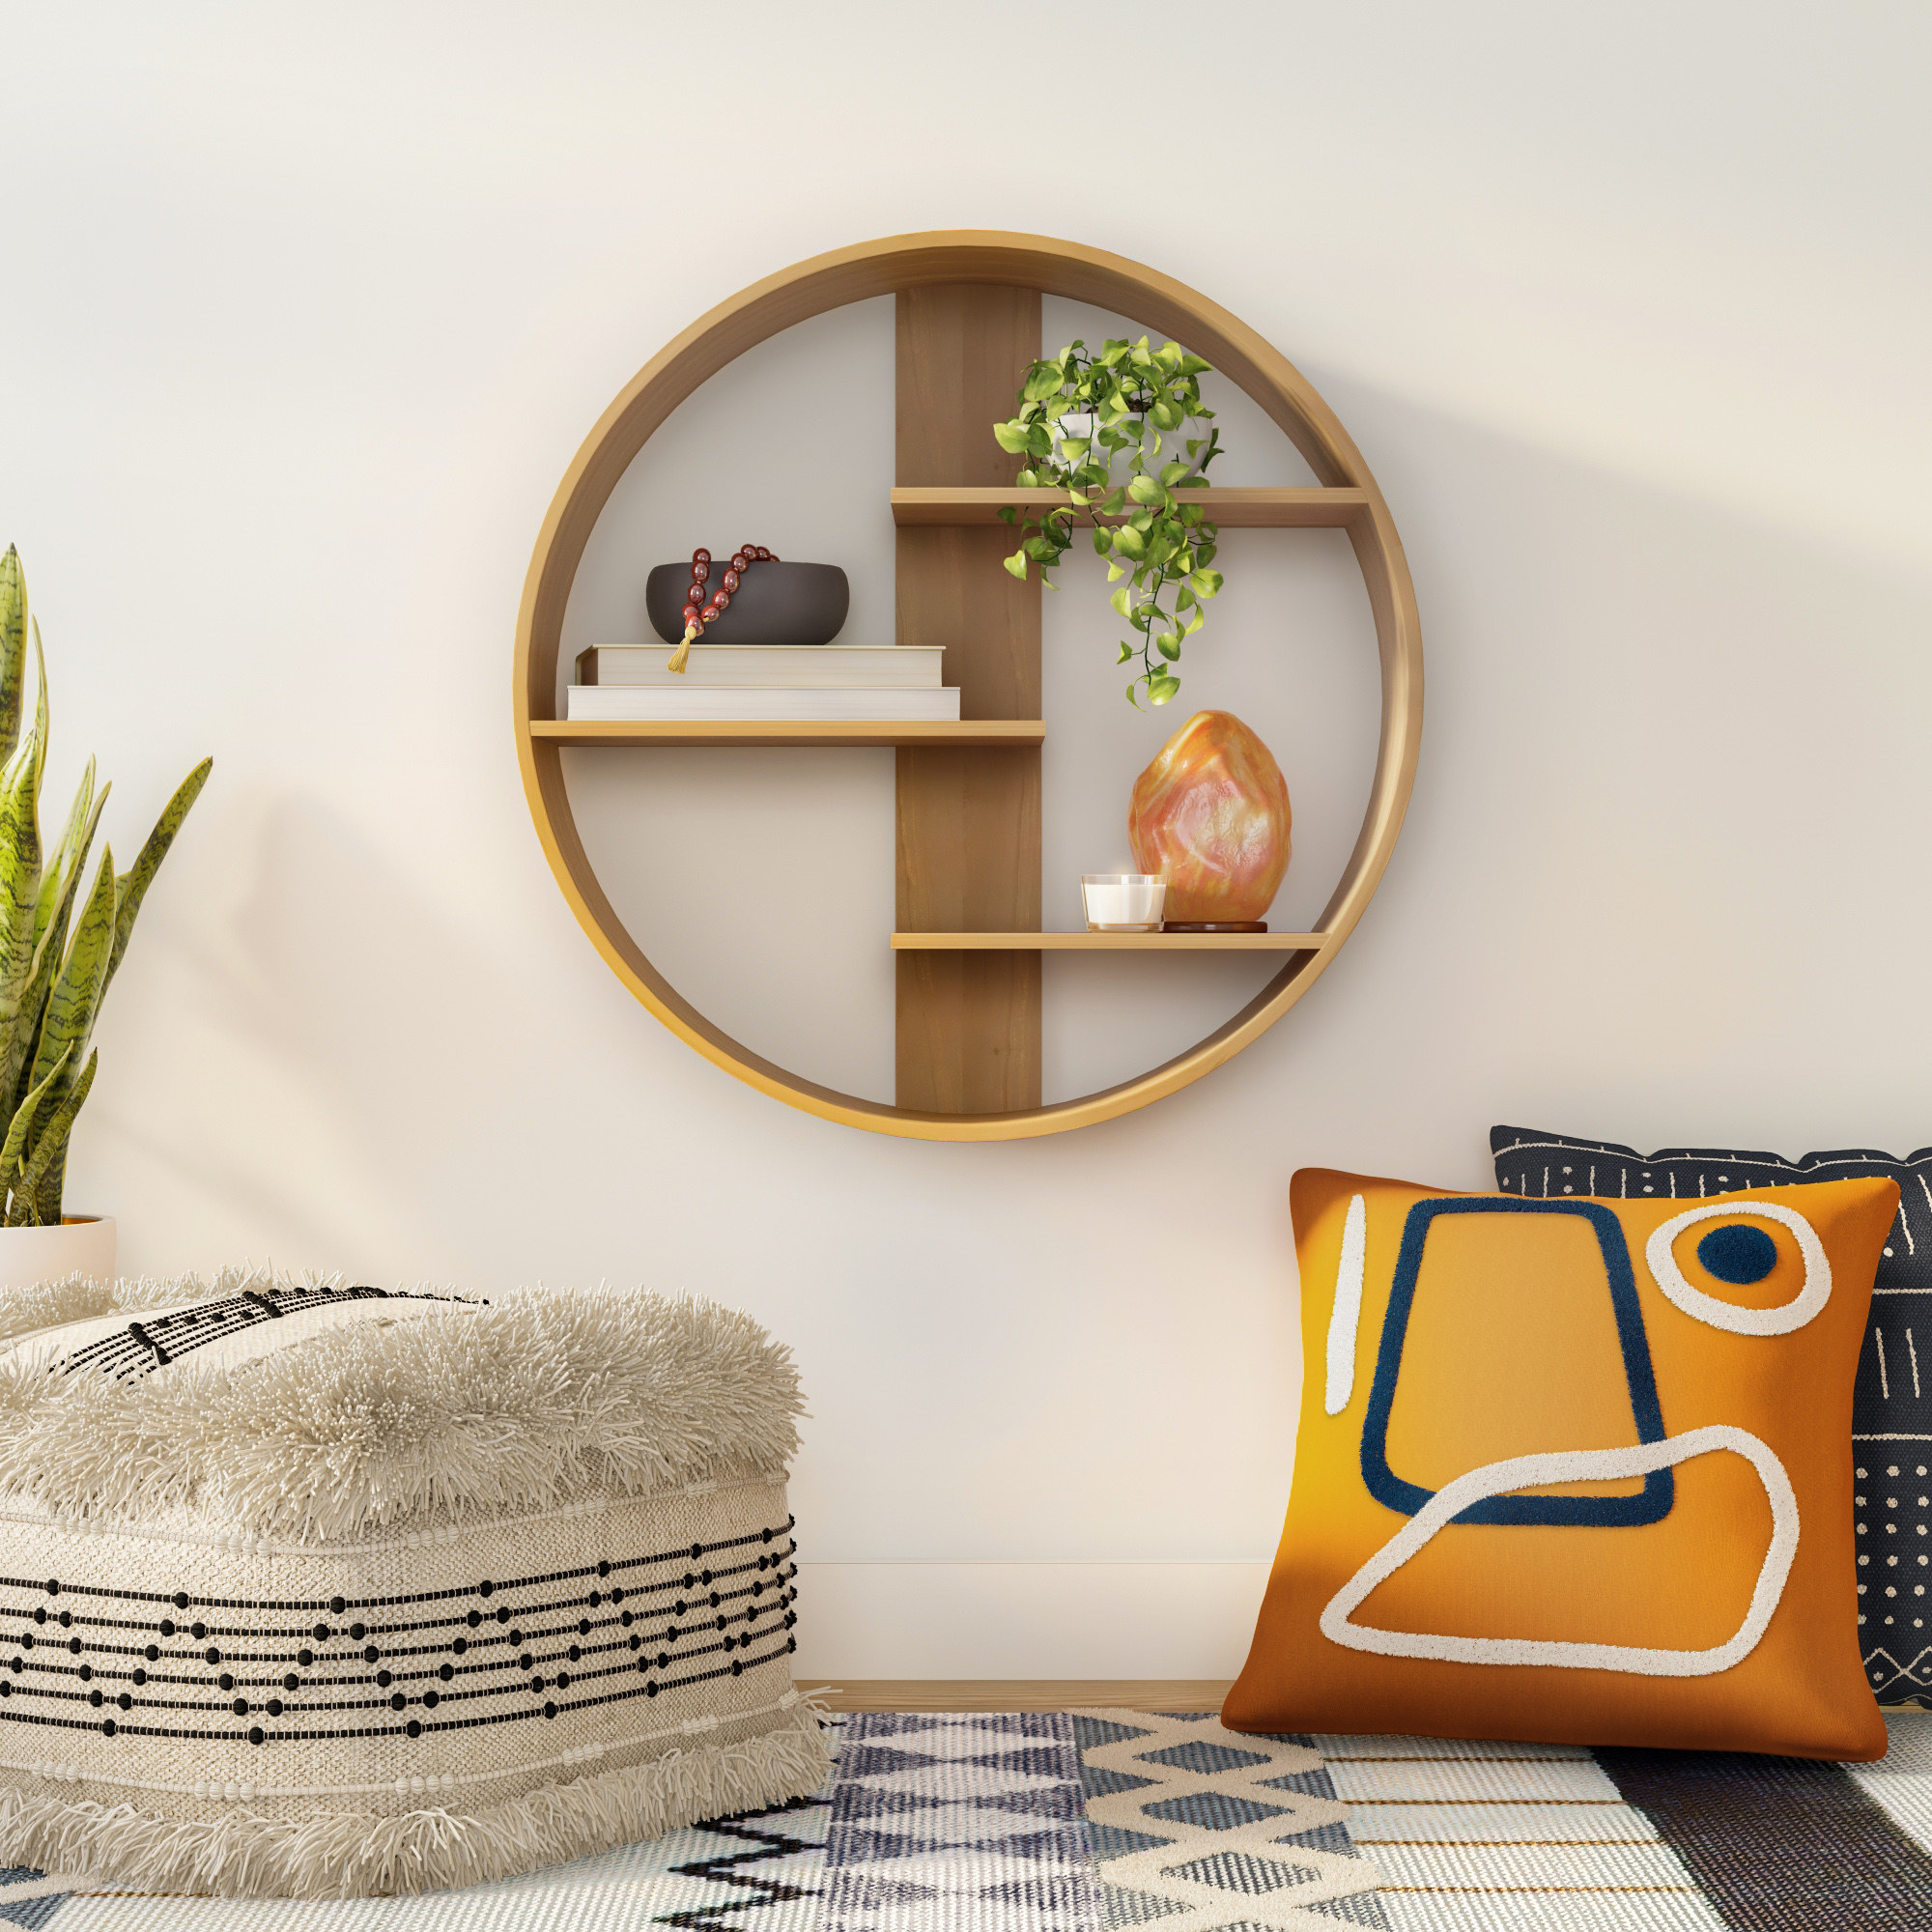 the circular shelf